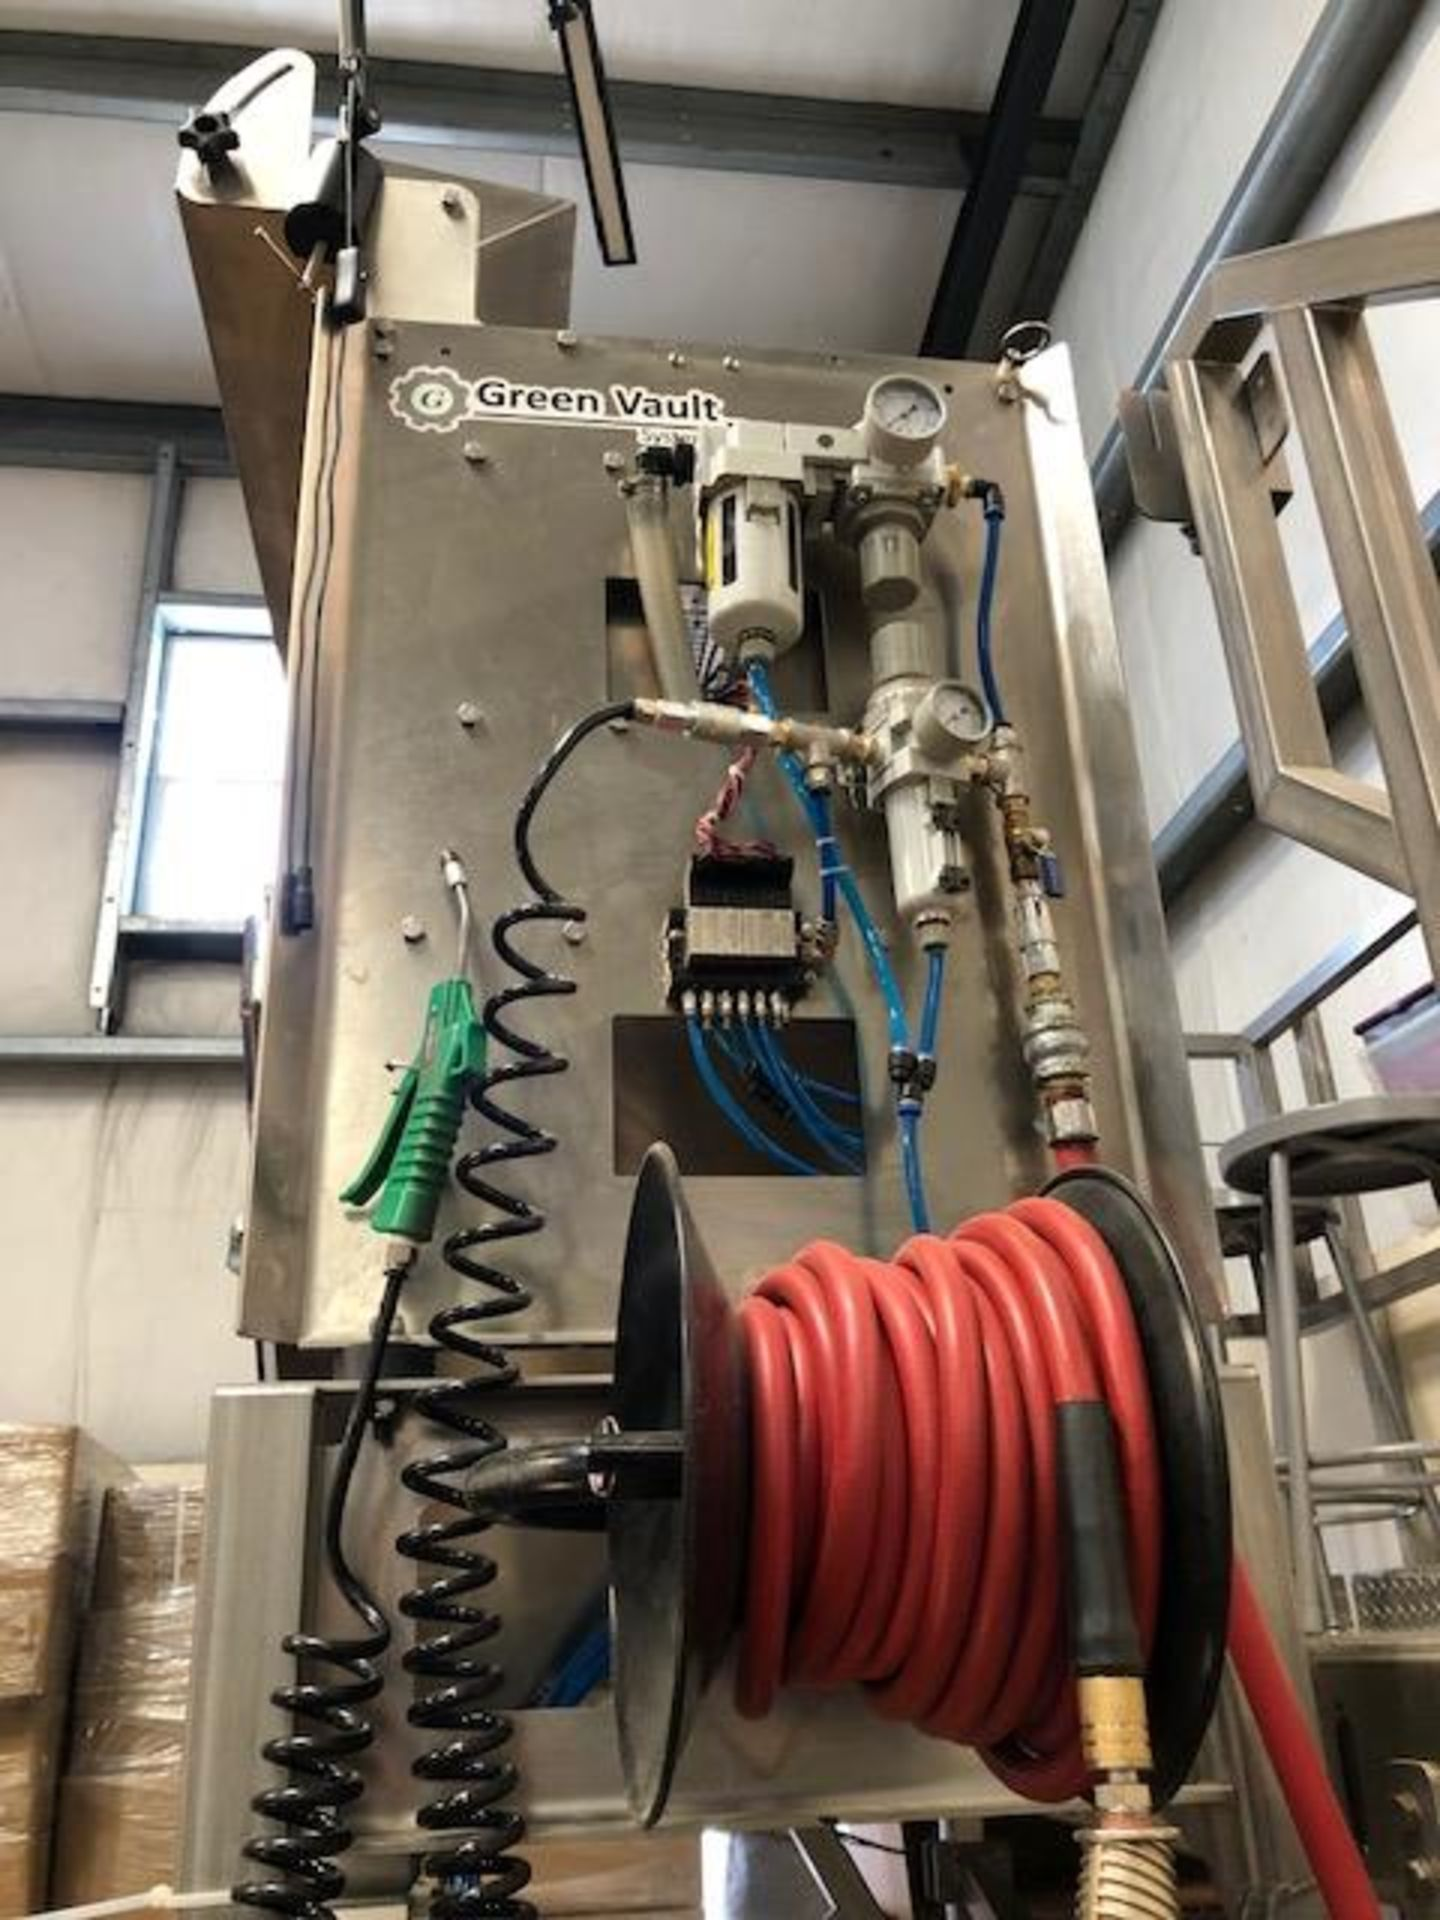 Used-Green Vault Systems Precision Batcher for Batching & Packaging Flower w/ Air Compressor - Image 22 of 23